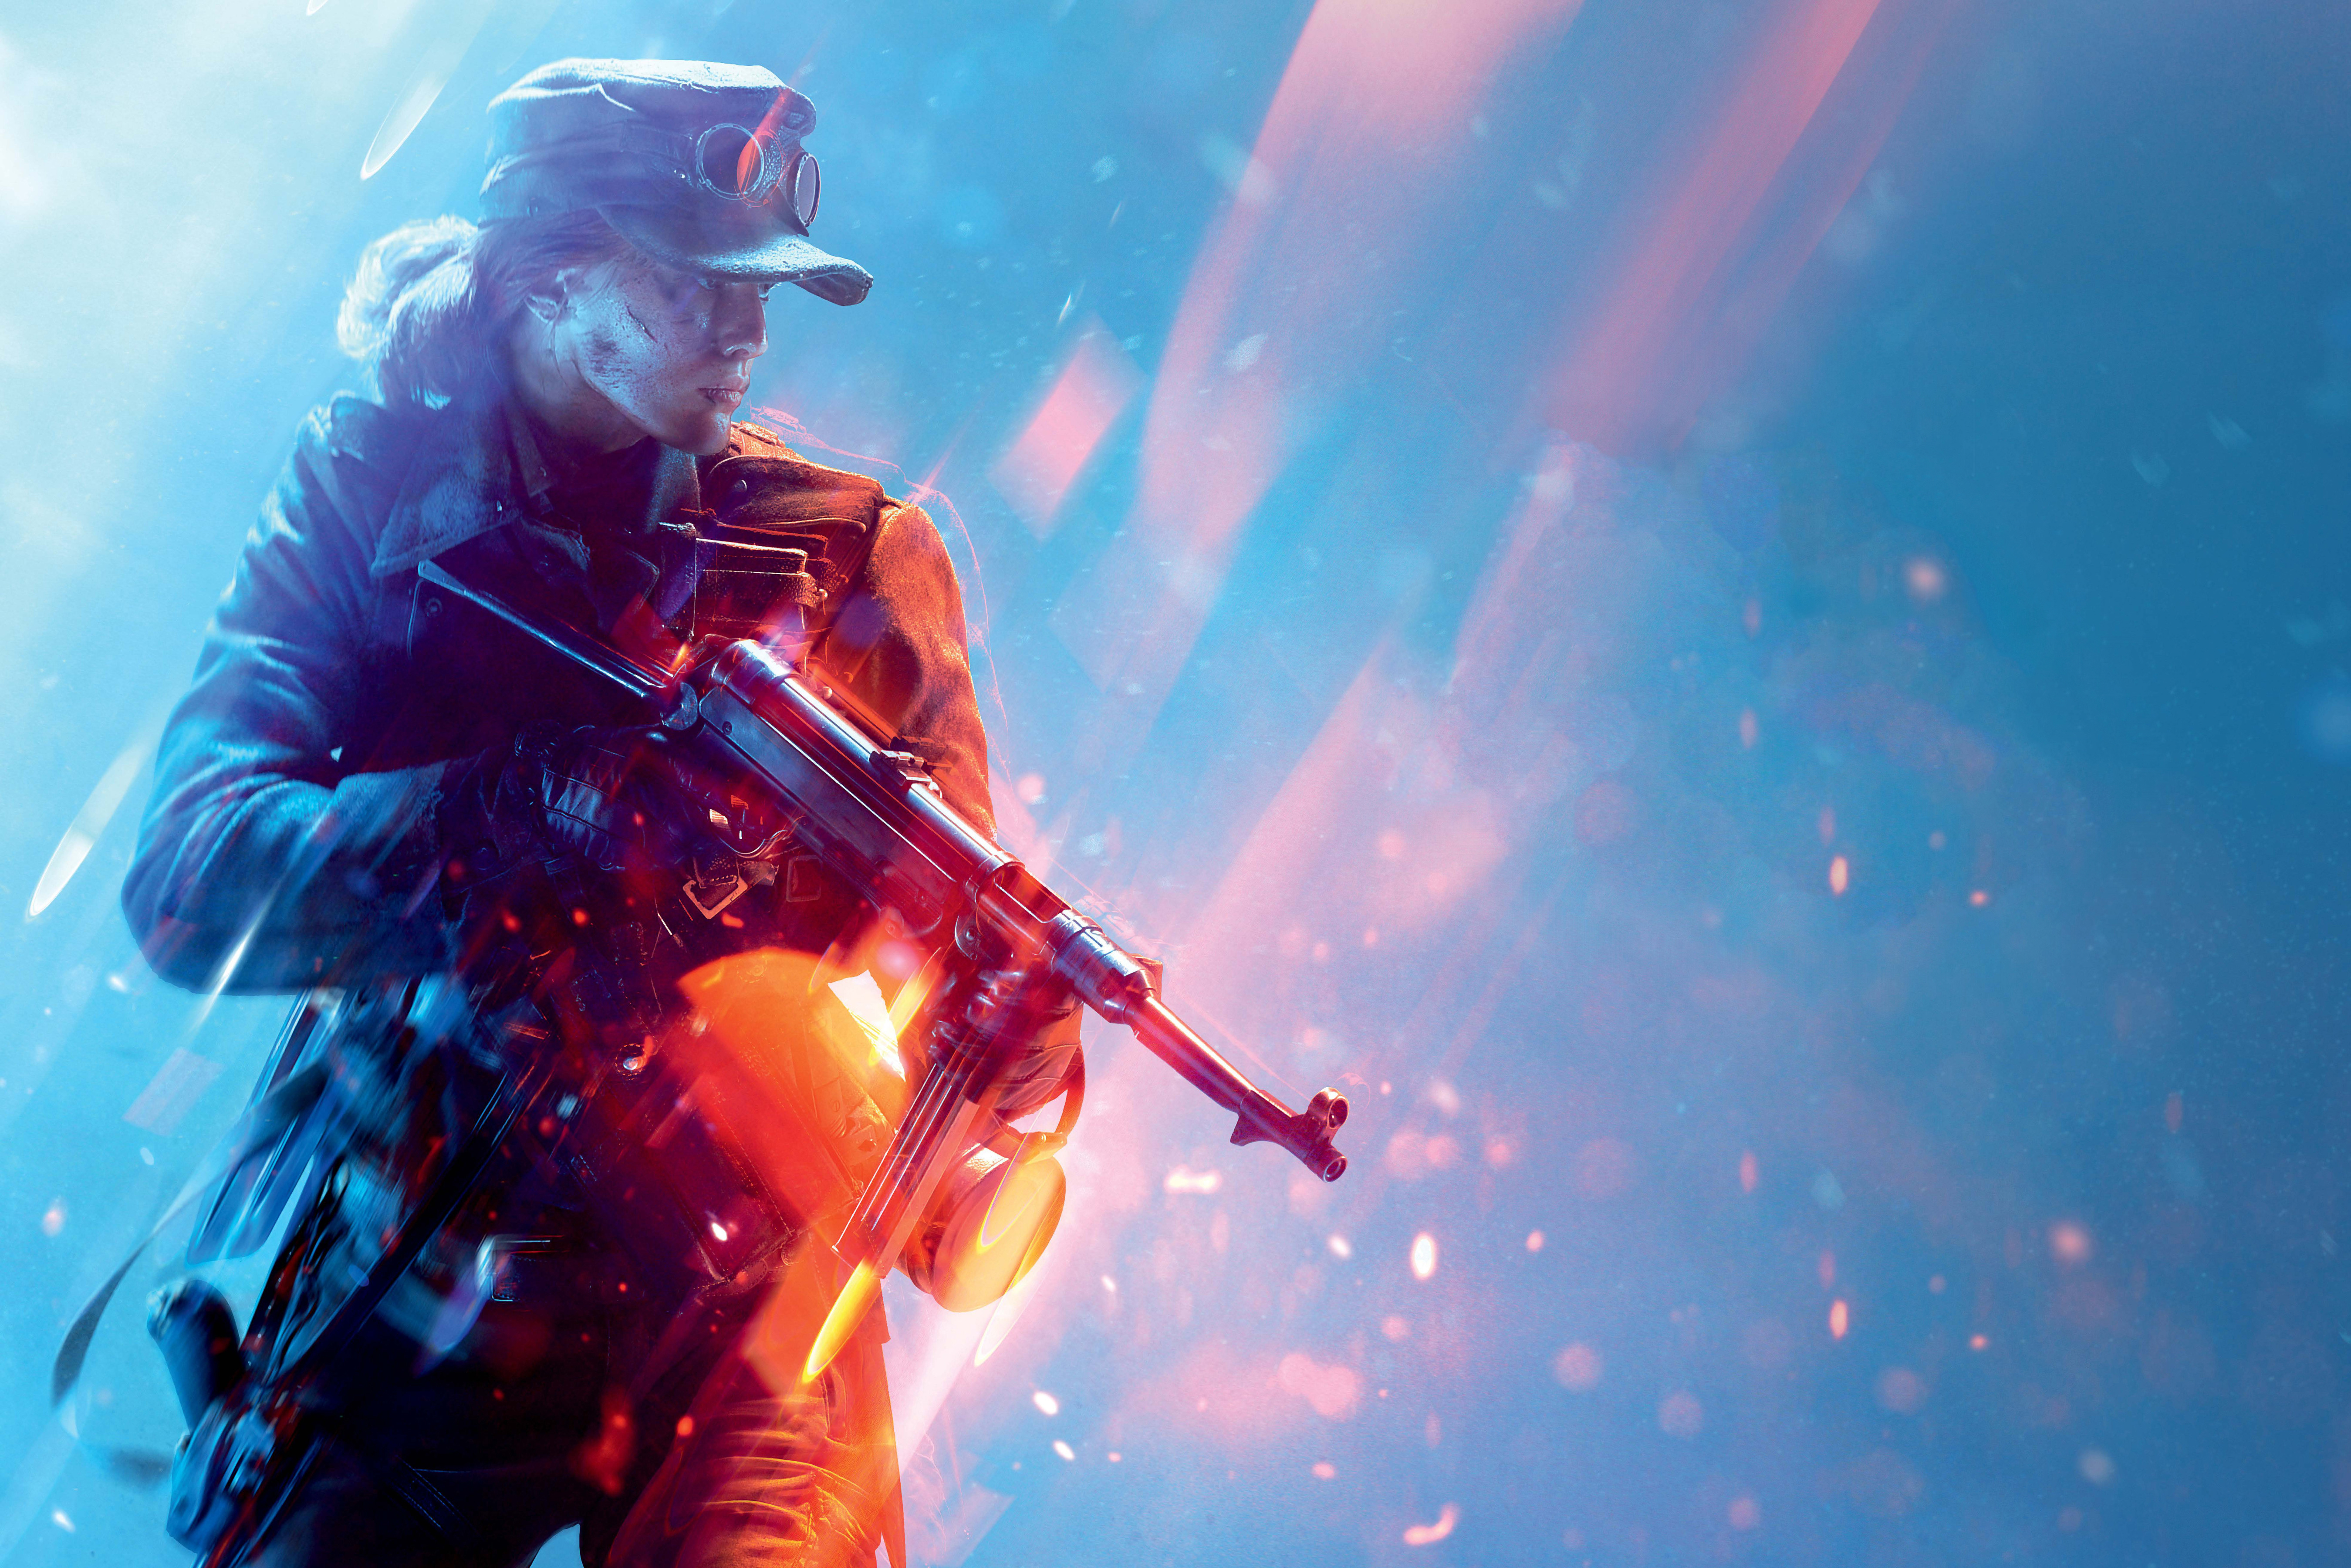 1280x720 Battlefield V 720p Wallpaper Hd Games 4k Wallpapers Images Photos And Background